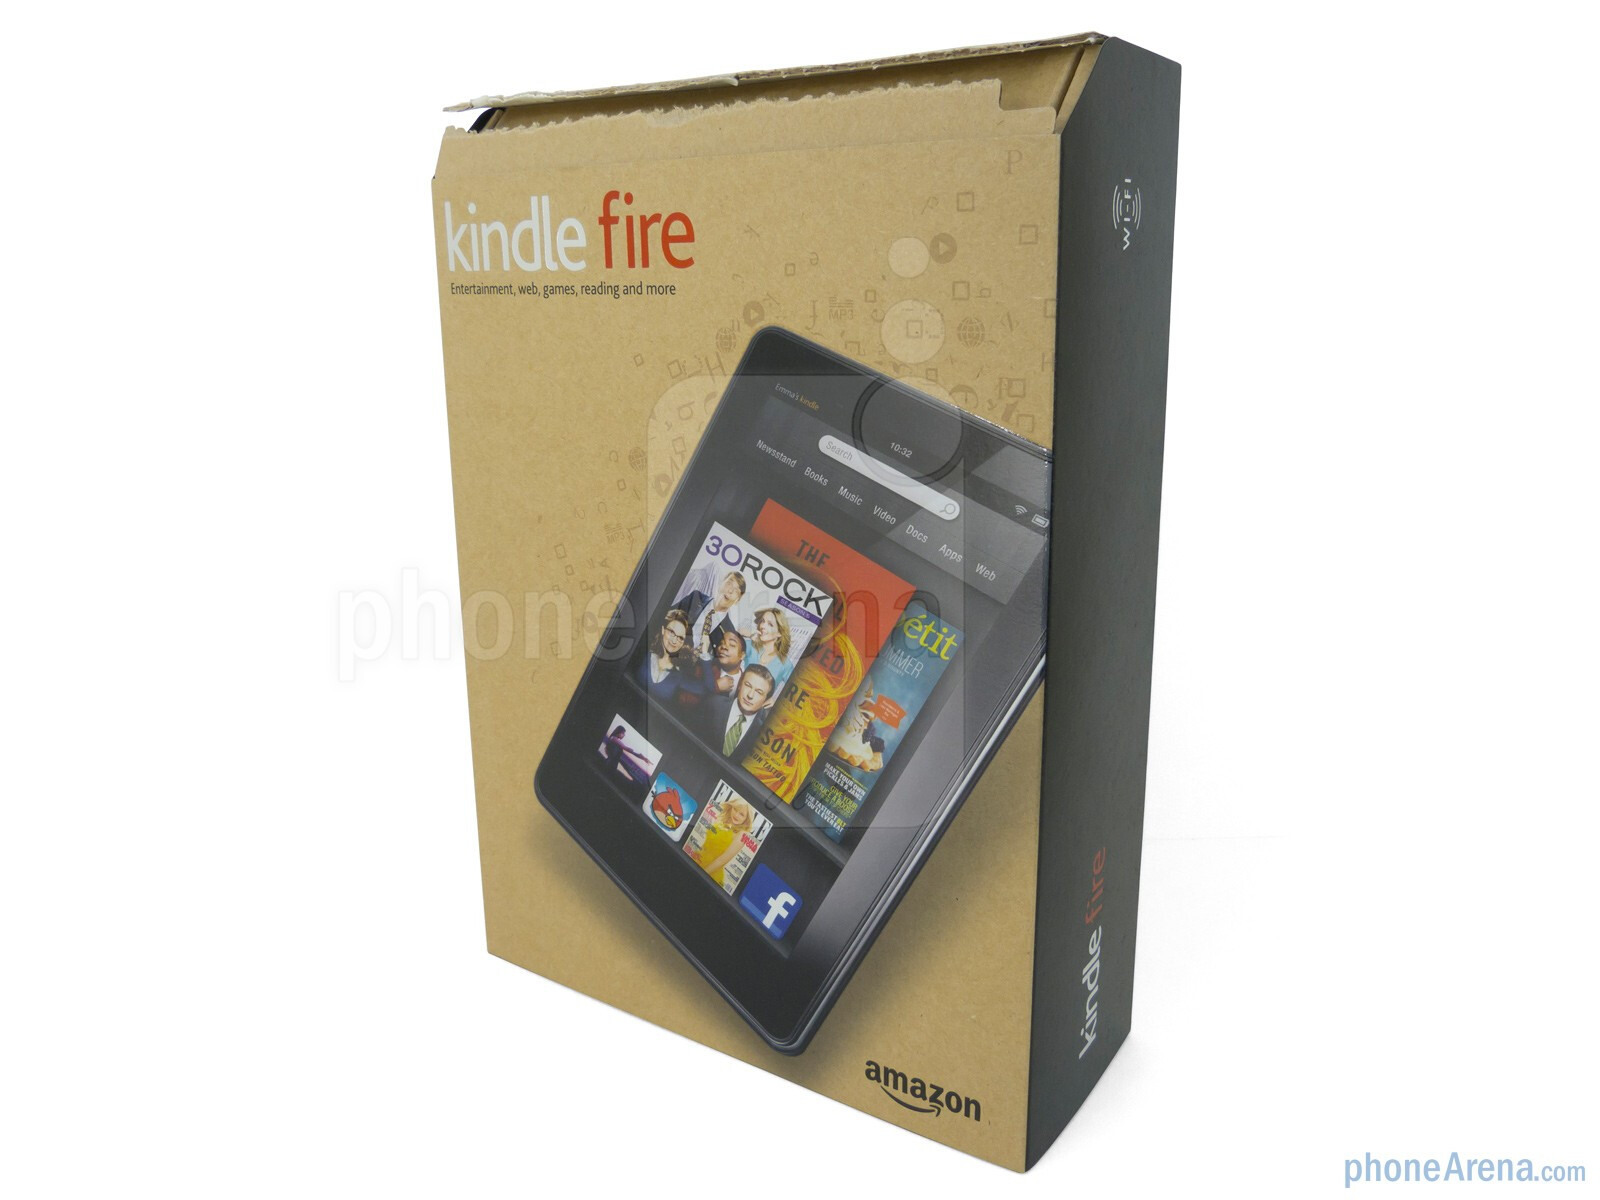 Kindle Vs Sony Reader: Amazon Kindle Fire Review